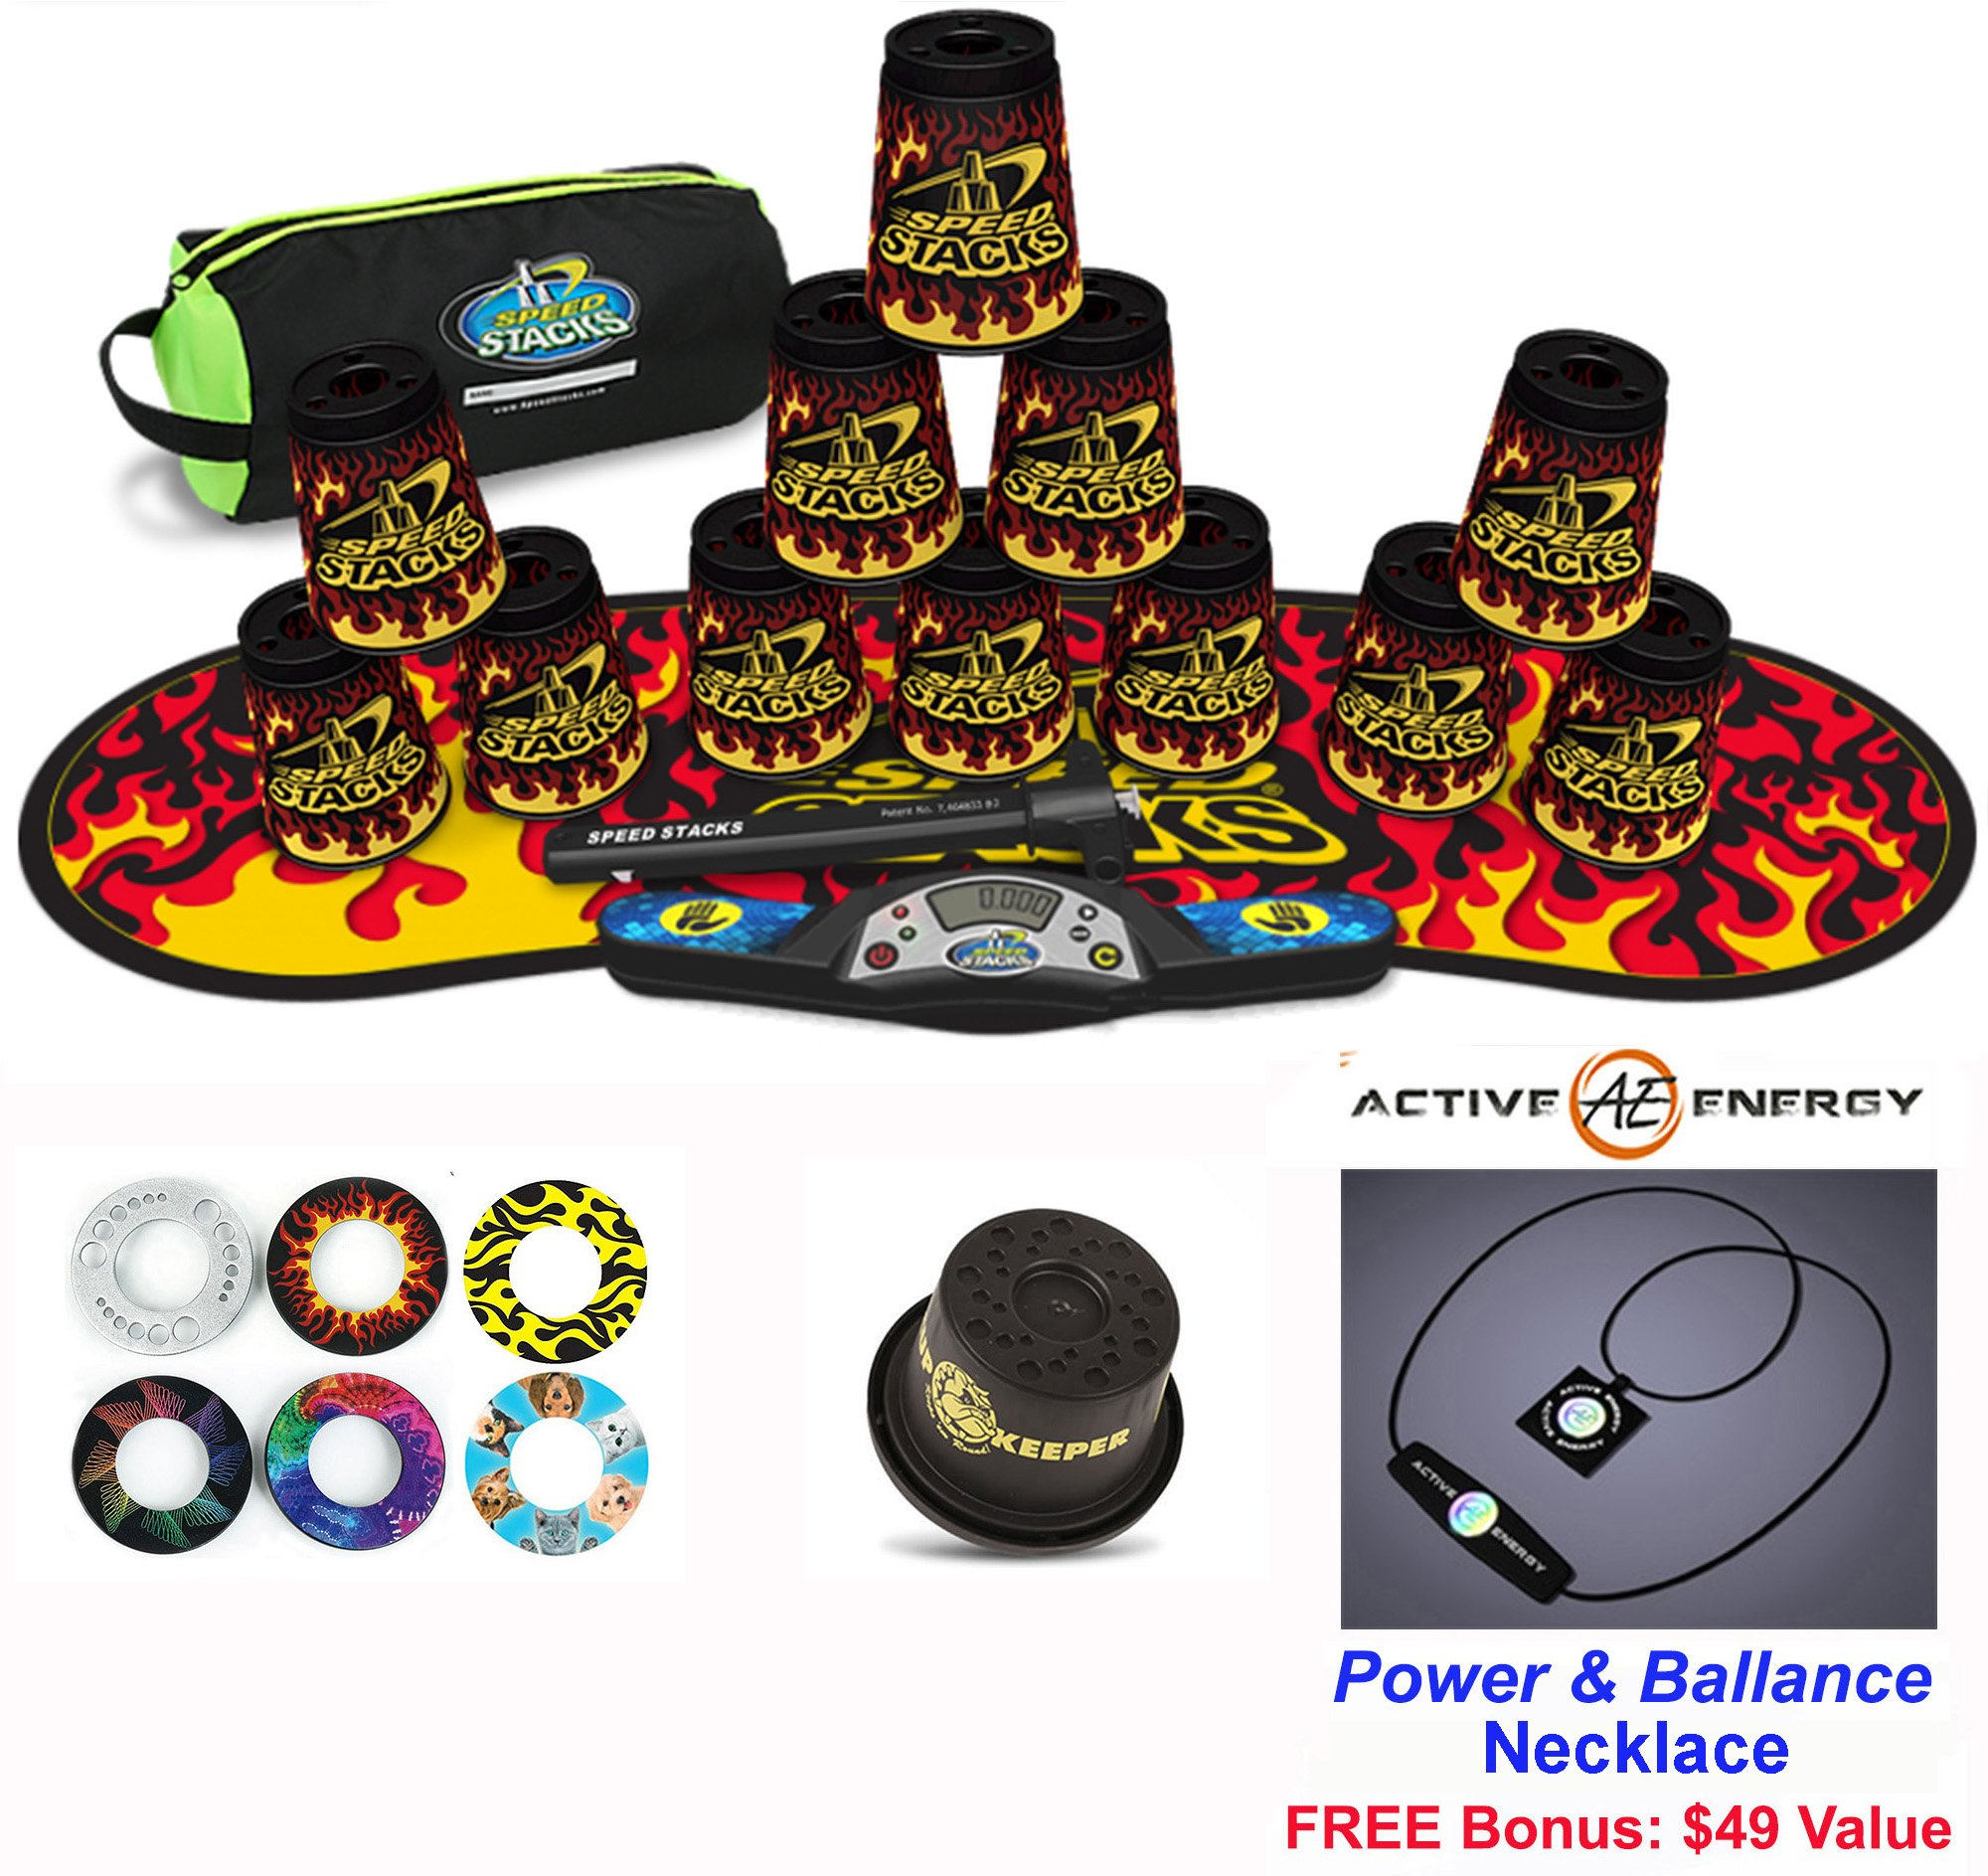 Speed Stacks Combo Set 'The Works'': 12 BLACK FLAME 4'' Cups & Gen 3 Mat, G4 Pro Timer, Cup Keeper, Stem, Gear Bag + Active Energy Necklace